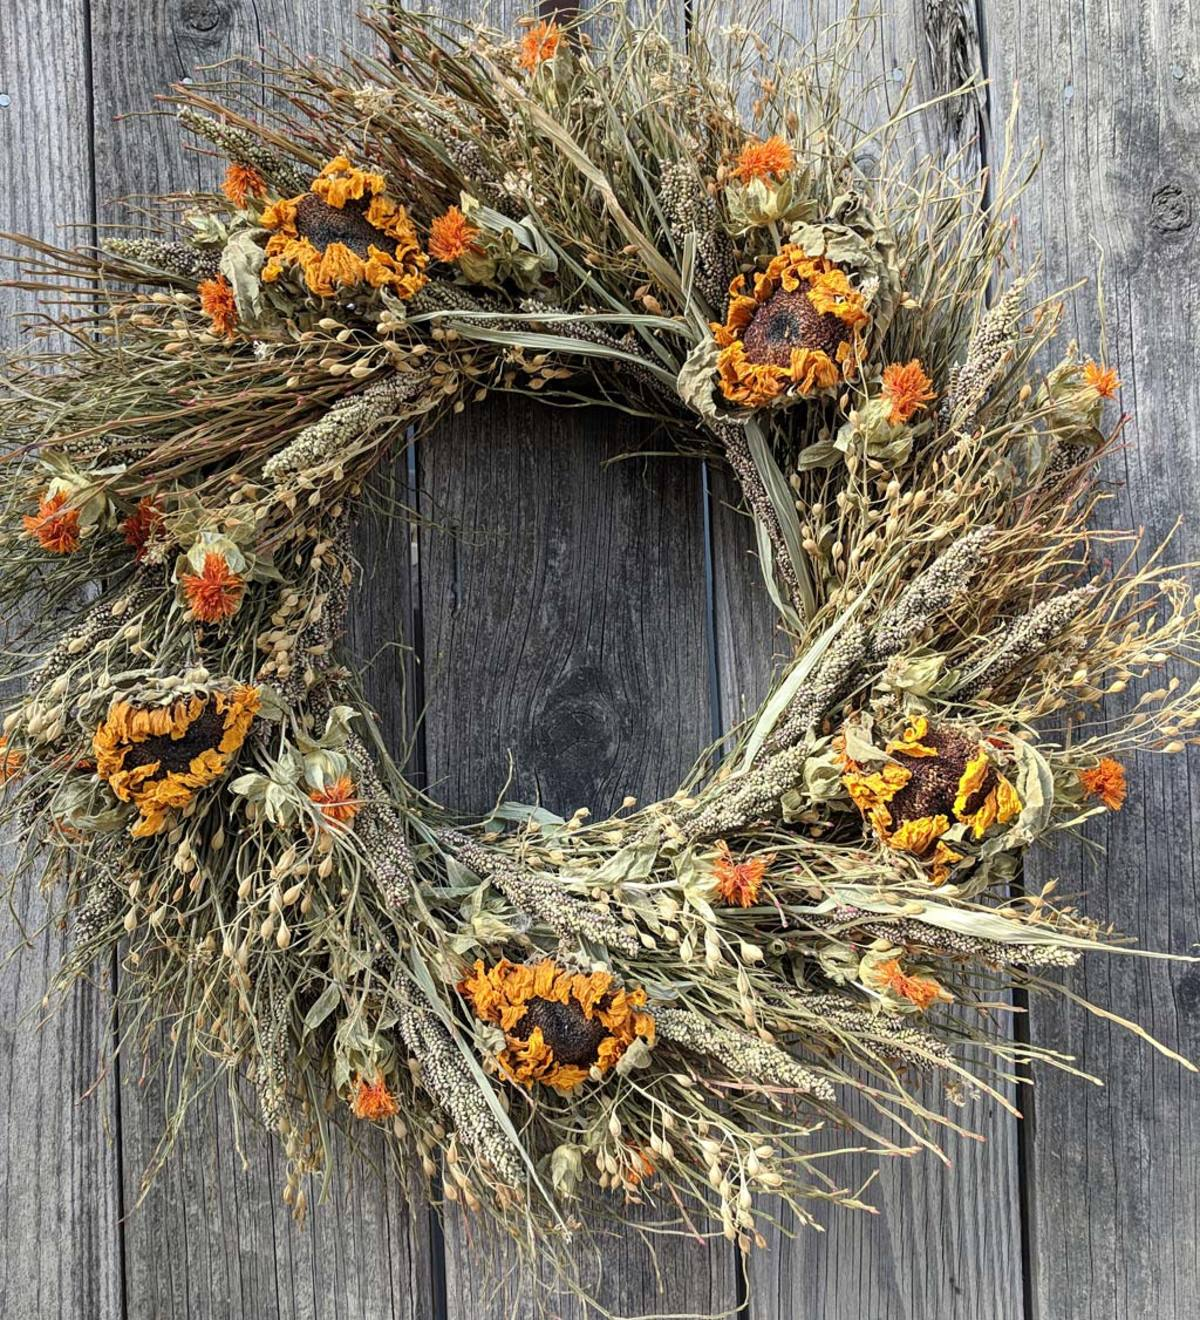 Dried Sunflower and Grasses Wreath